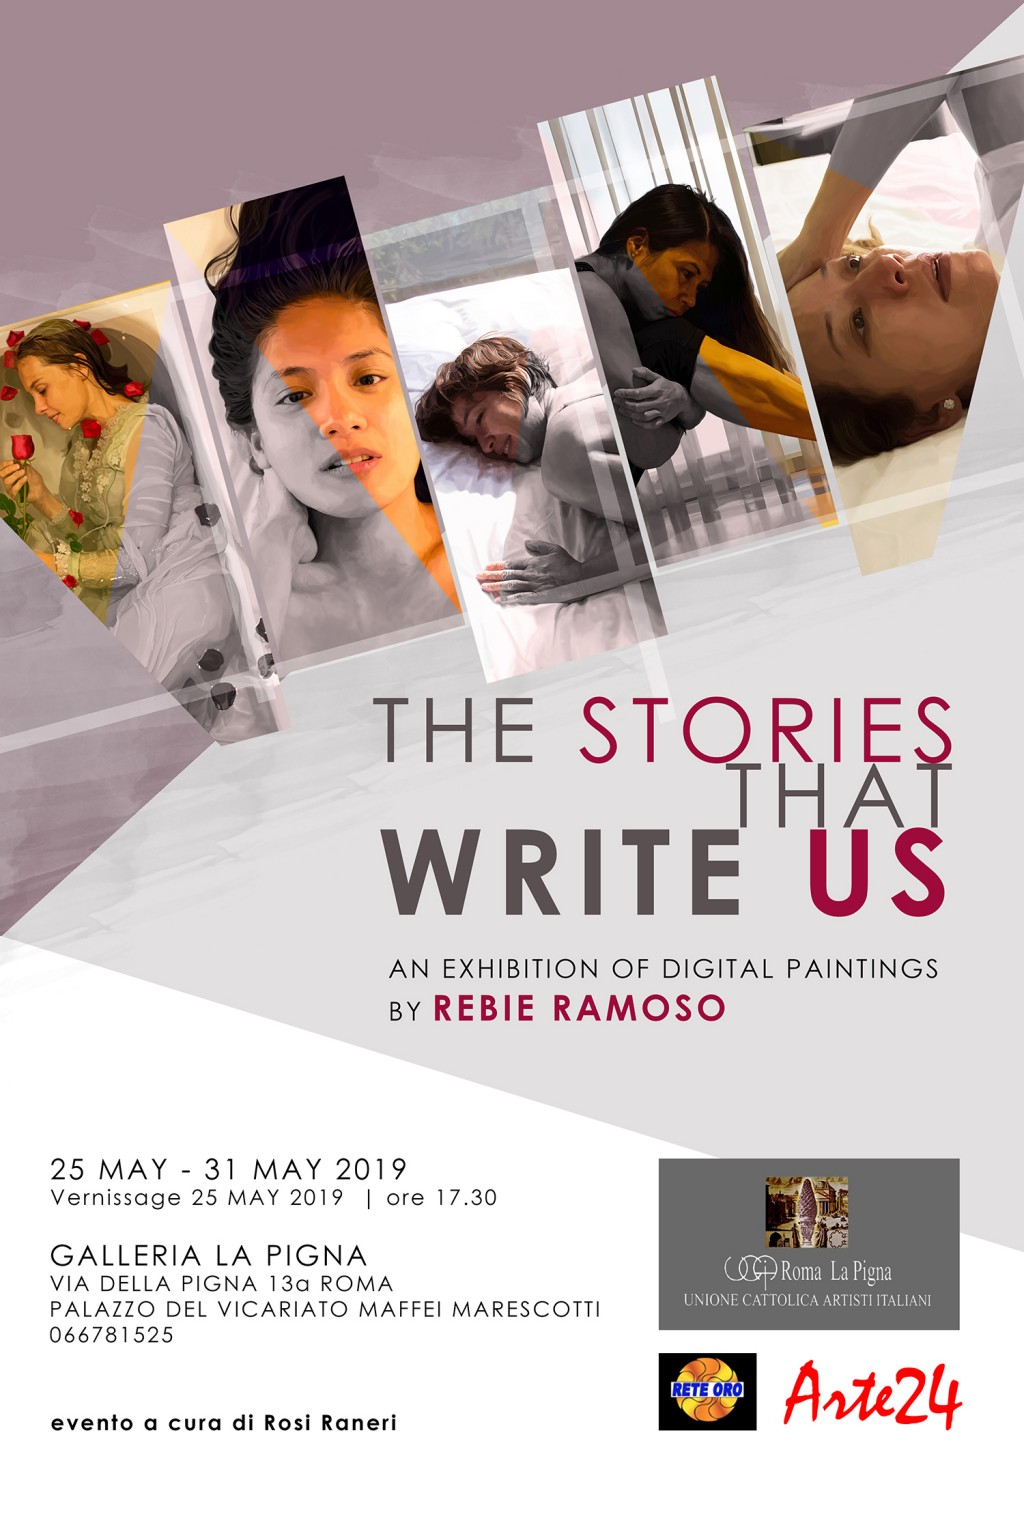 The Stories That Write Us is a solo exhibition of digital paintings by Filipino visual artist Rebie Ramoso The exhibit will be at Galleria La Pigna Rome Italy on 25 May to 31 May 2019